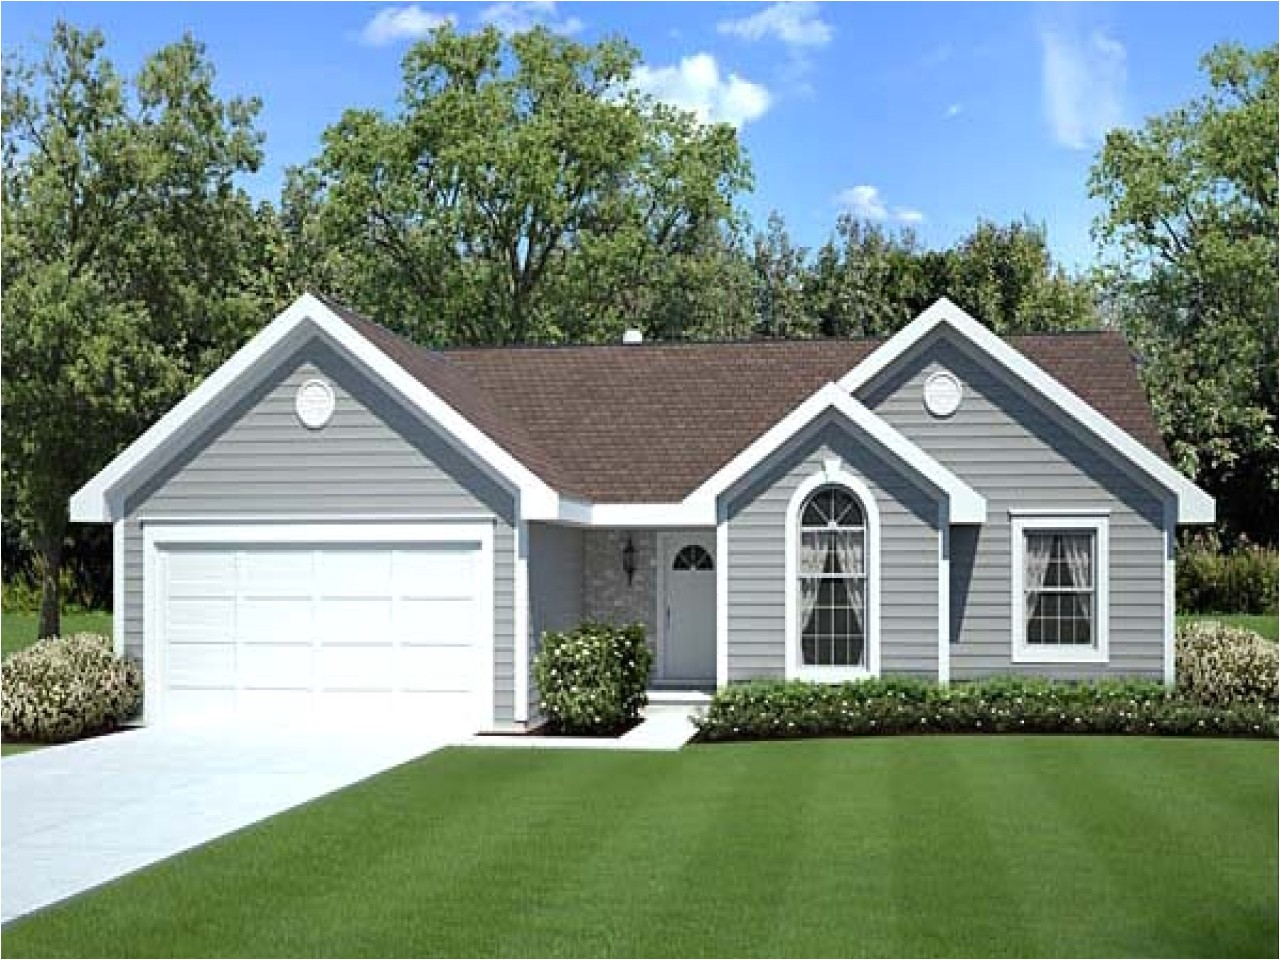 Menards Homes Plans and Prices Menards Houses 28 Images Menards Complete Home